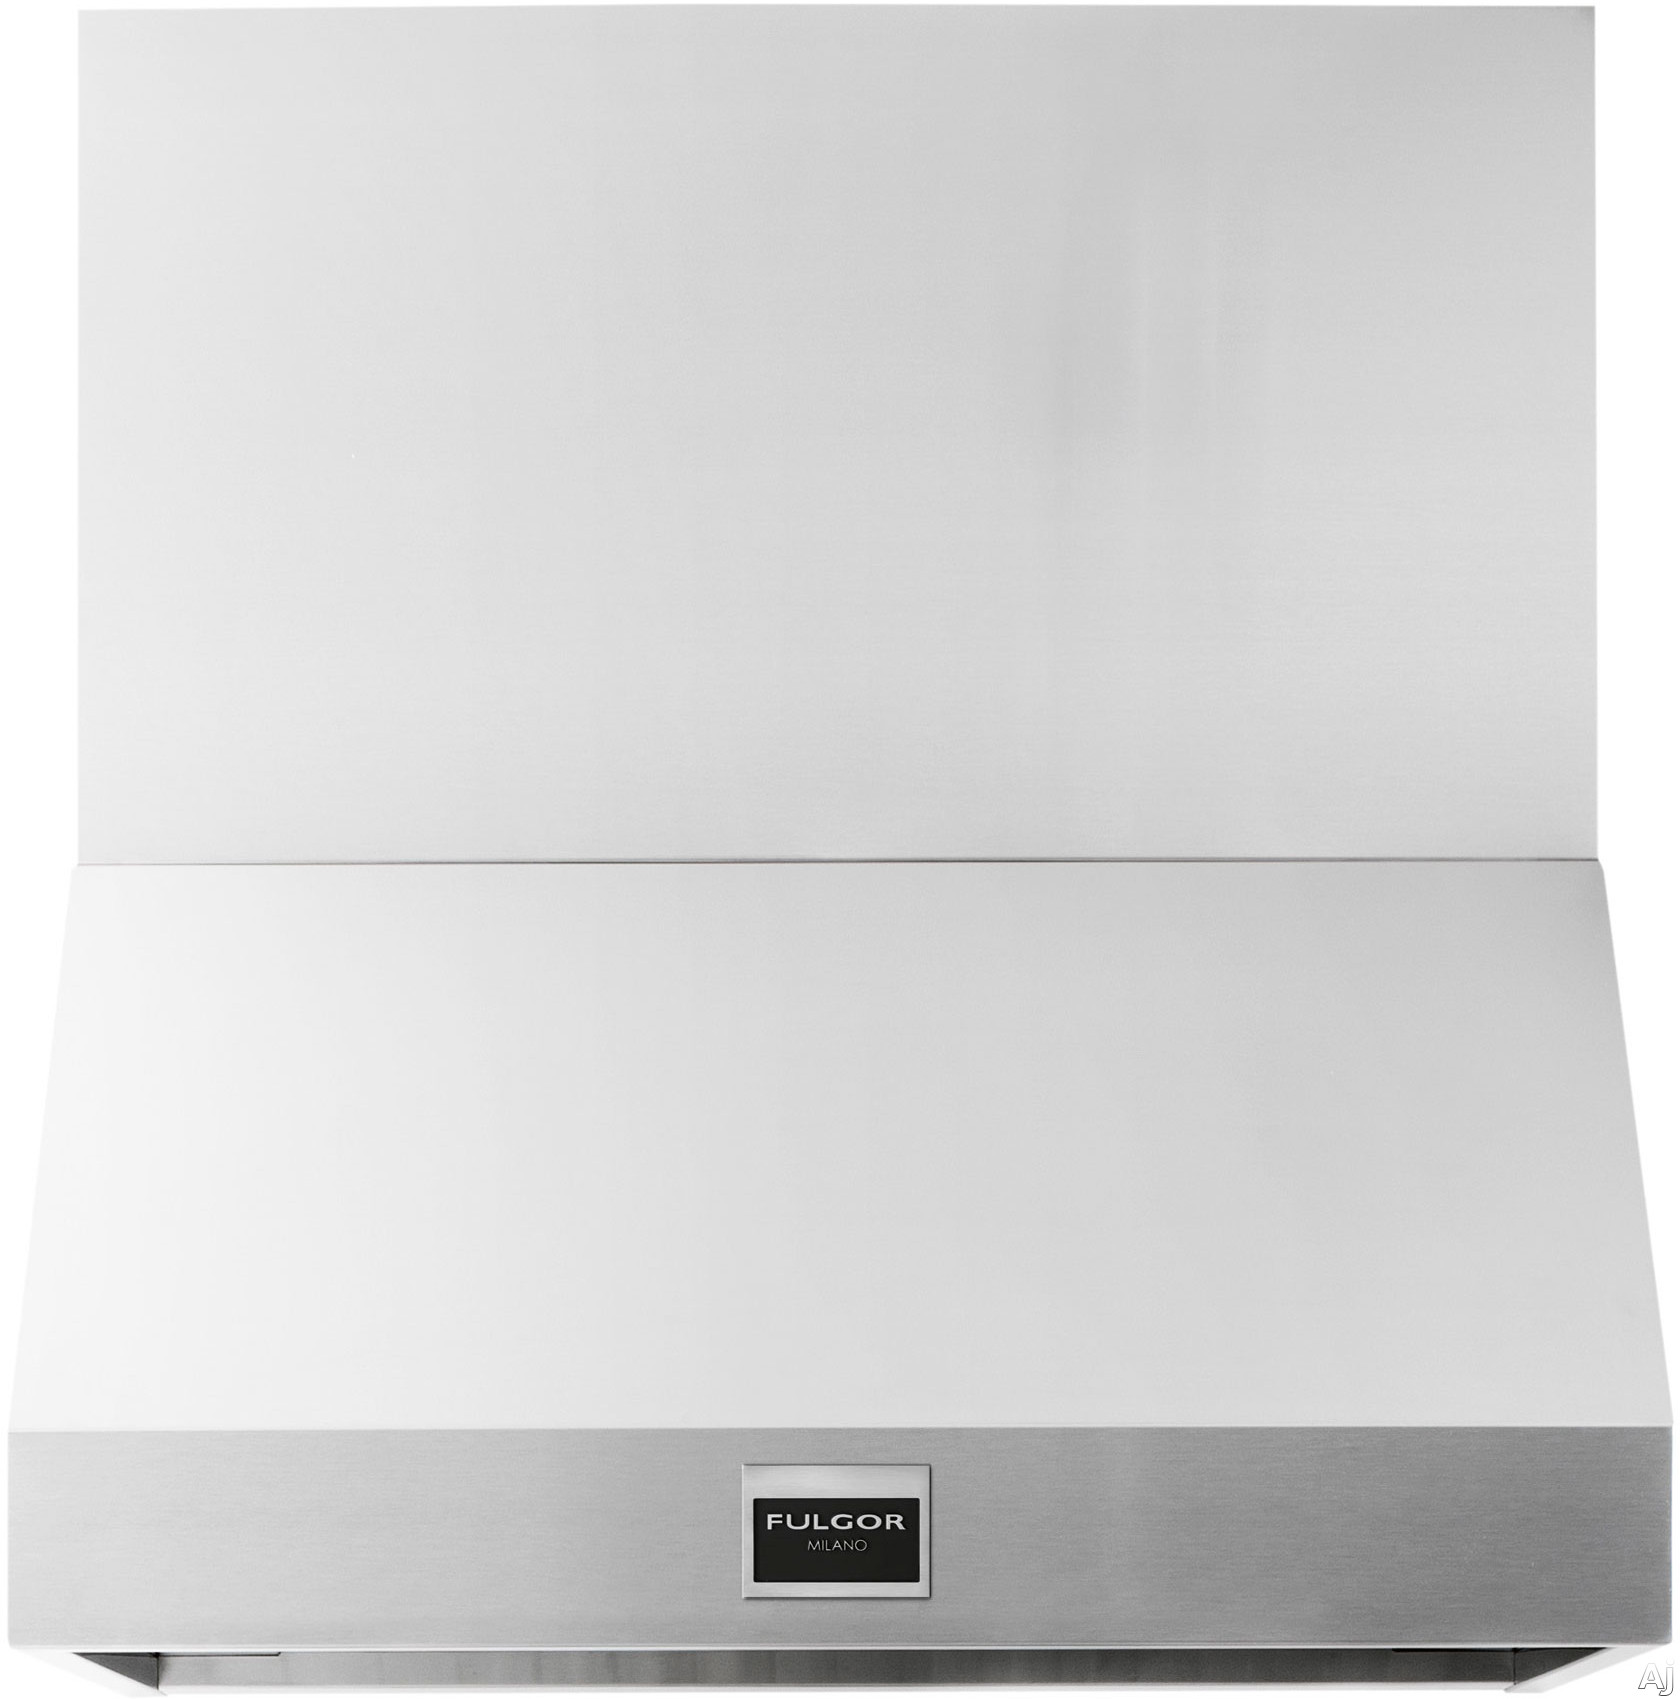 Fulgor Milano Sophia Series F6PH30S1 30 Inch Professional Wall Mount Hood with 600 CFM Internal Blower Stainless Steel Baffle Filters Mechanical Controls 4 Speed Blower Fan LED Lighting and Recirculating Options